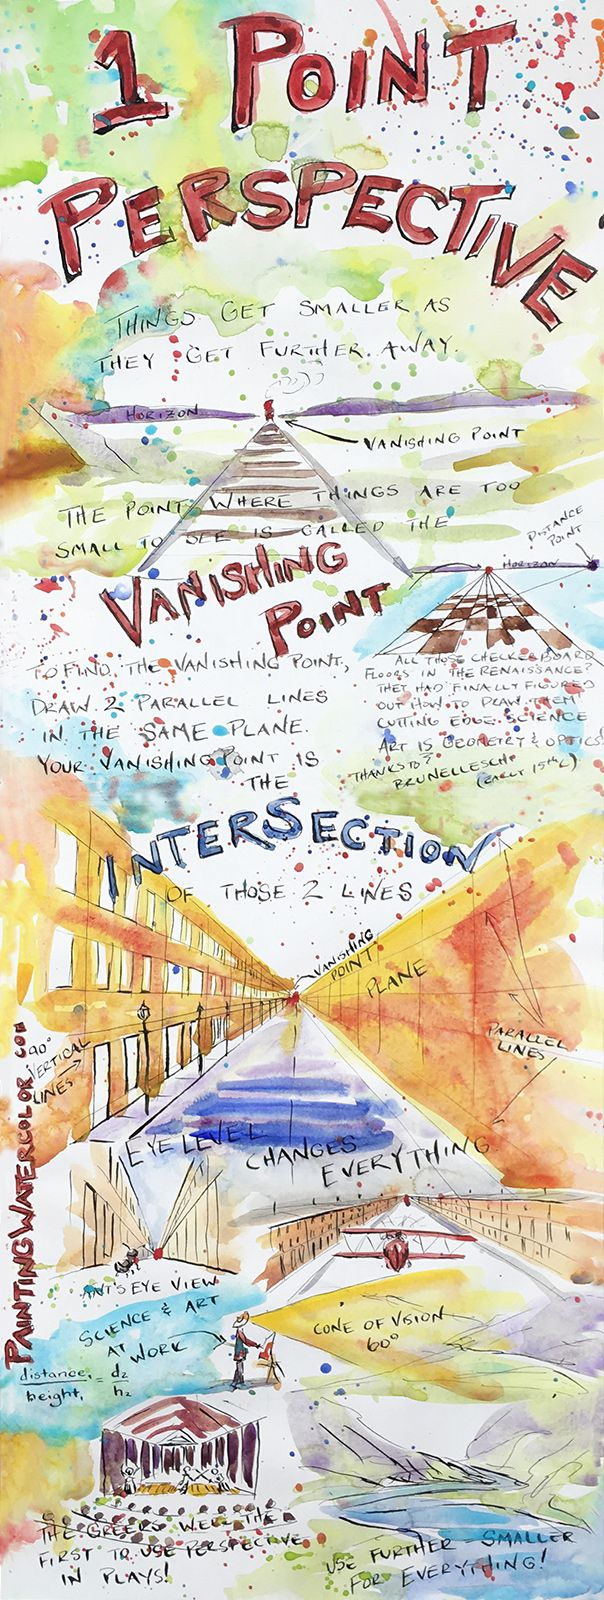 truebluemeandyou:    DIY Perspective in Drawing and Painting. My favorite art class ever was learning about perspective and using it to sketch and paint. In this post by Painting Watercolor, you learn about the vanishing point and horizon line. One Point Perspective is very clearly explained and demonstrated. Find the written tutorial for DIY Perspective in Drawing and Painting from Painting Watercolor. here.